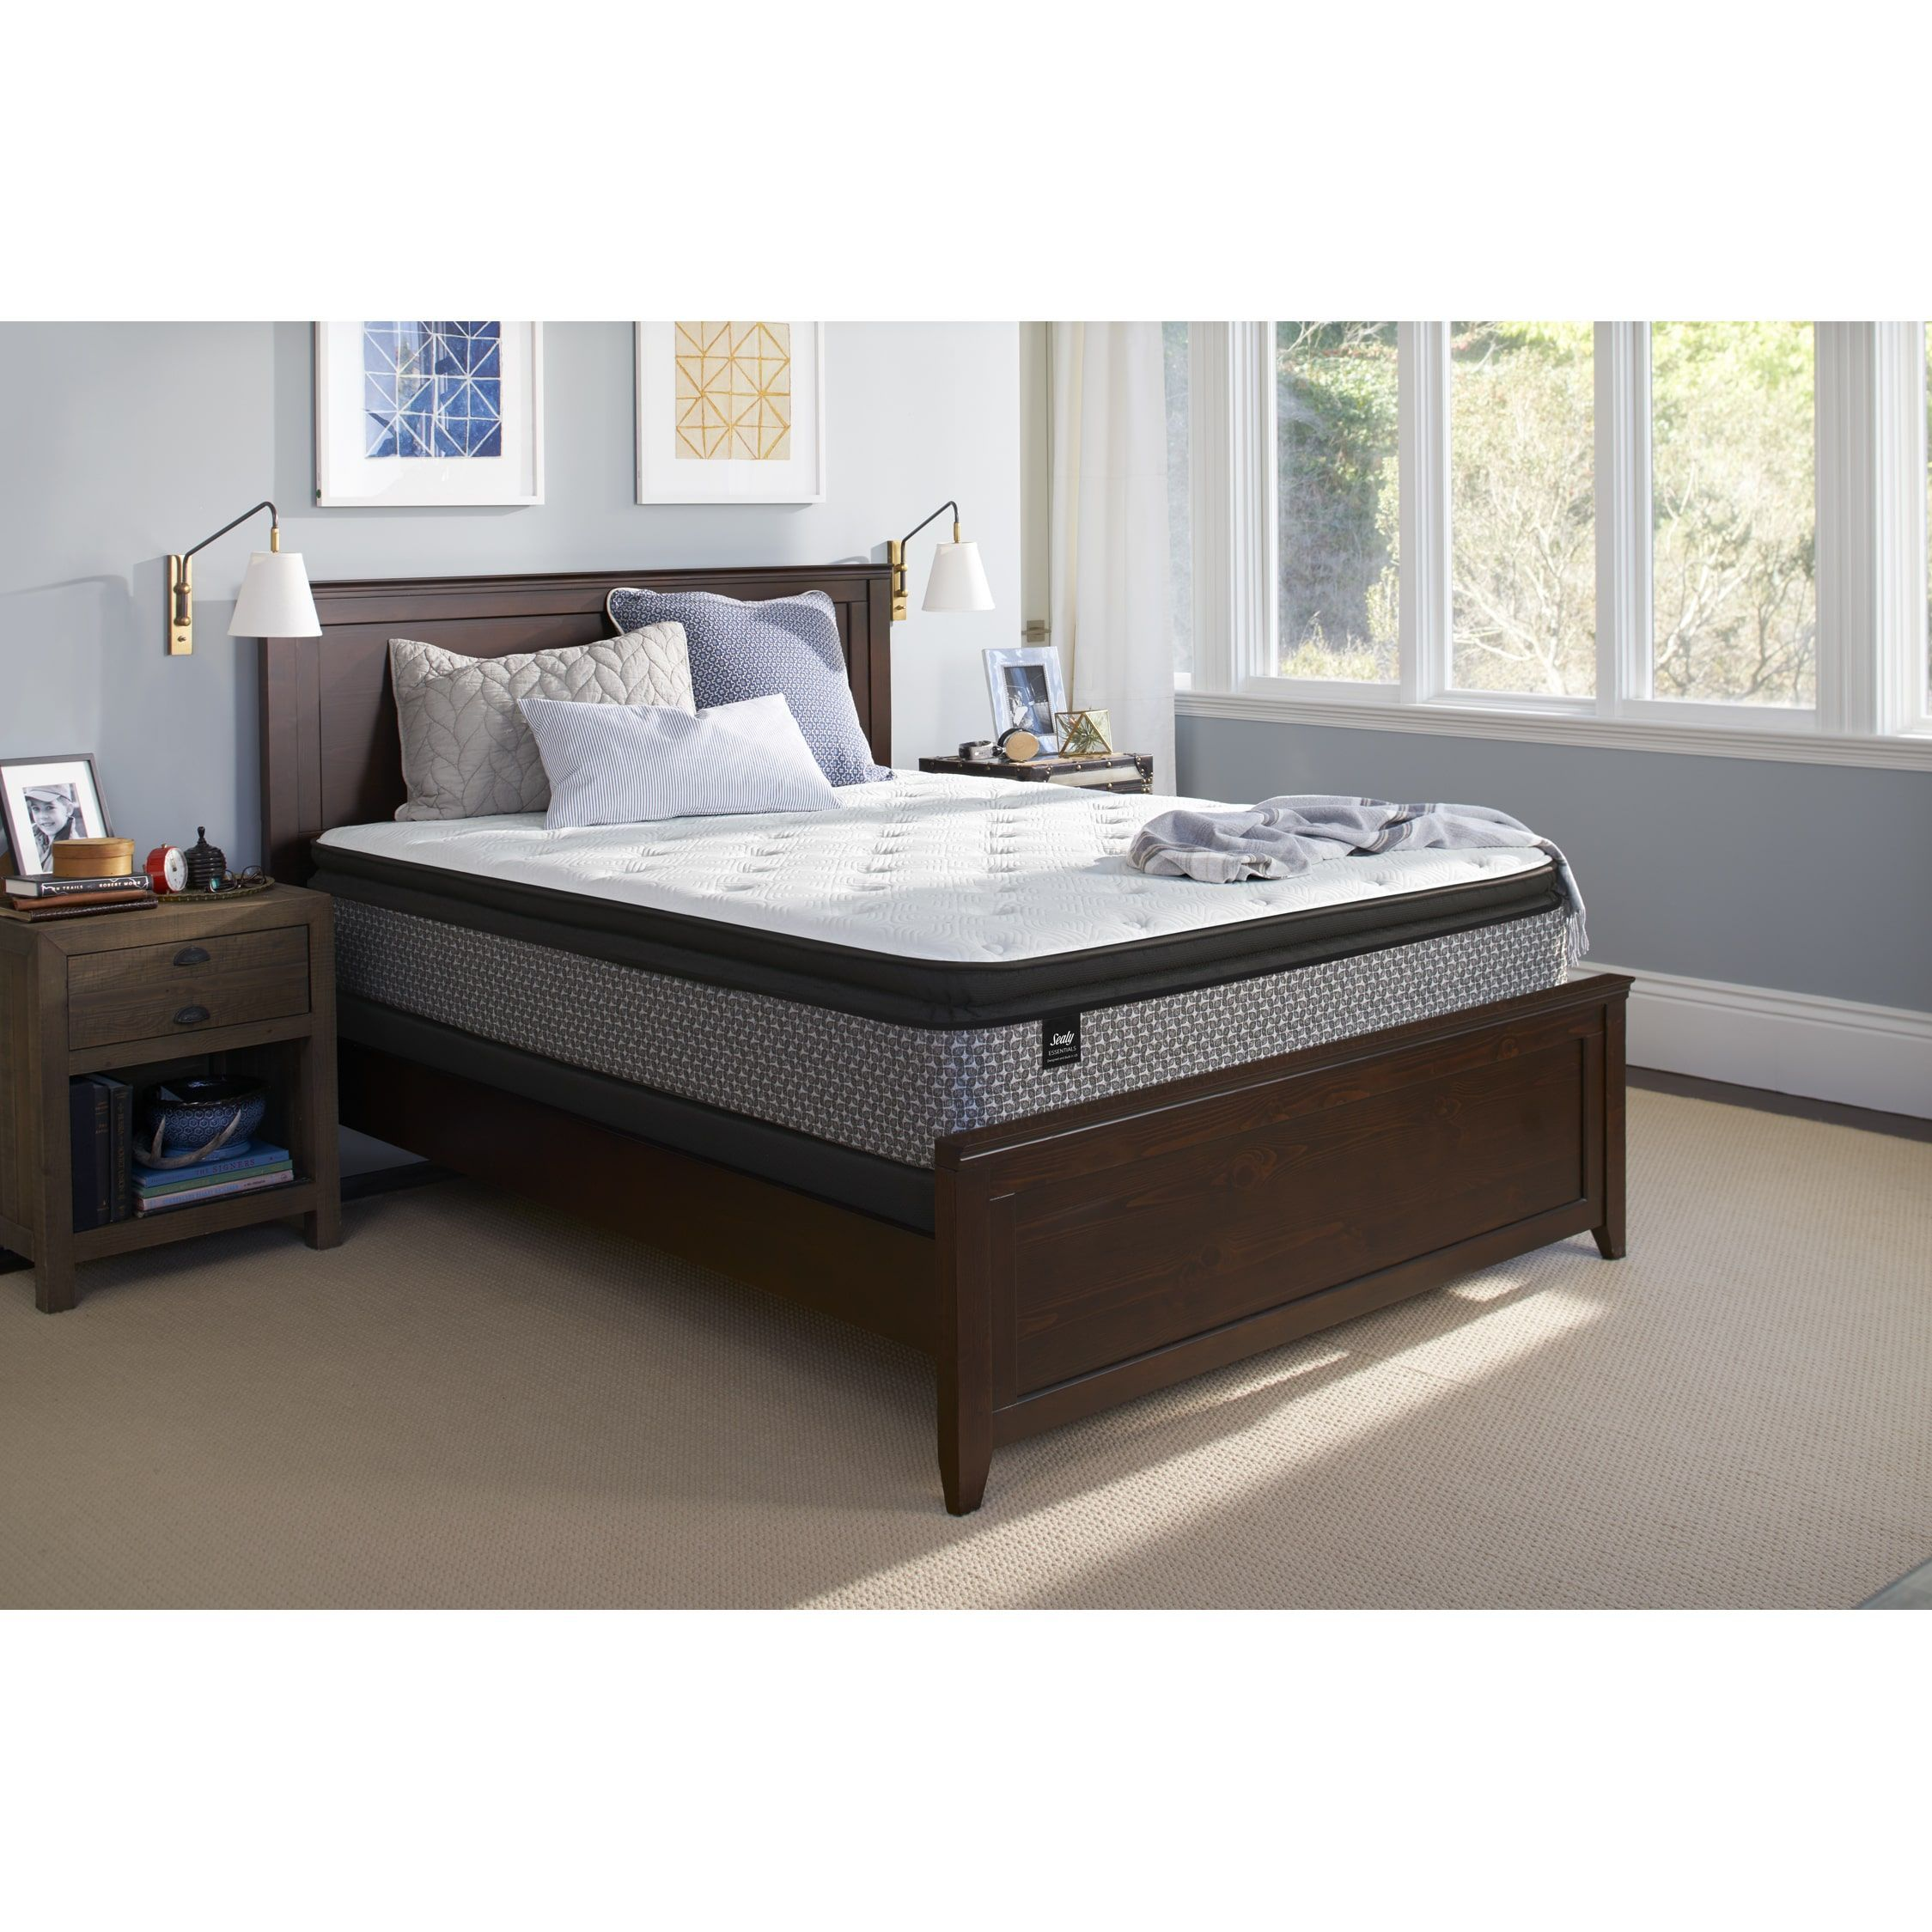 twin wood queen spring steel best bedroom wooden springs your trundle ideal metal set furniture full headboard sets bedside frames king brown idea tables of bed cheap included rails mattress and box basic popular size beds prices boxspring frame smart with for